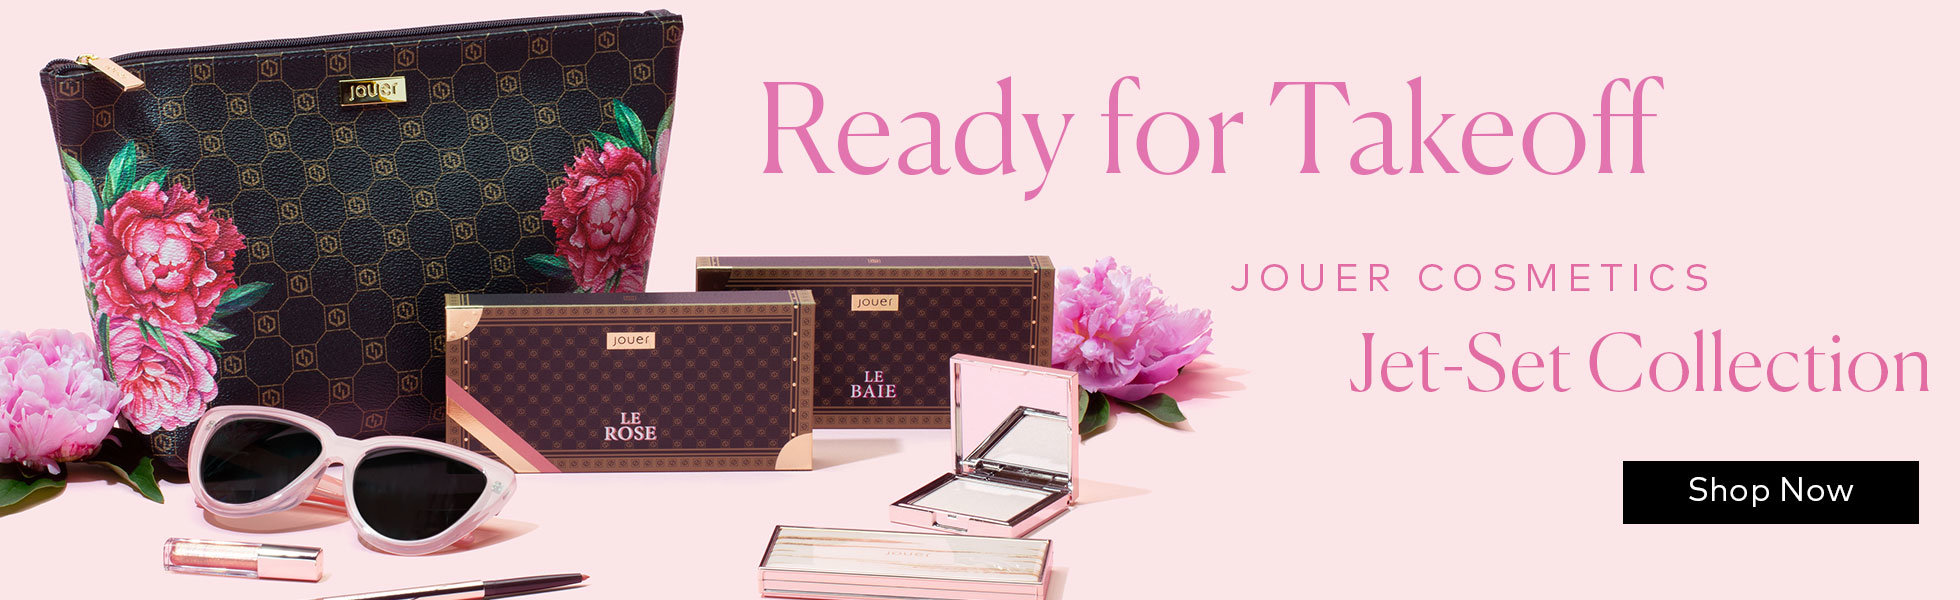 Shop Jouer Cosmetics' Jet-Set Collection on Beautylish